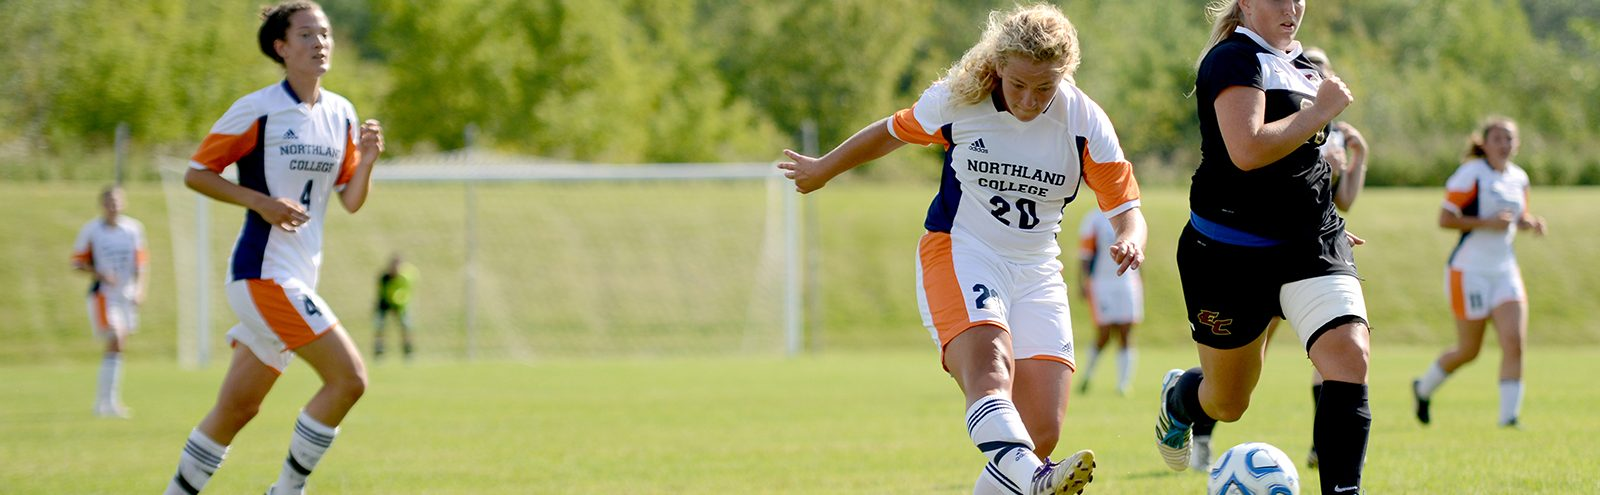 Northland College Women's Soccer